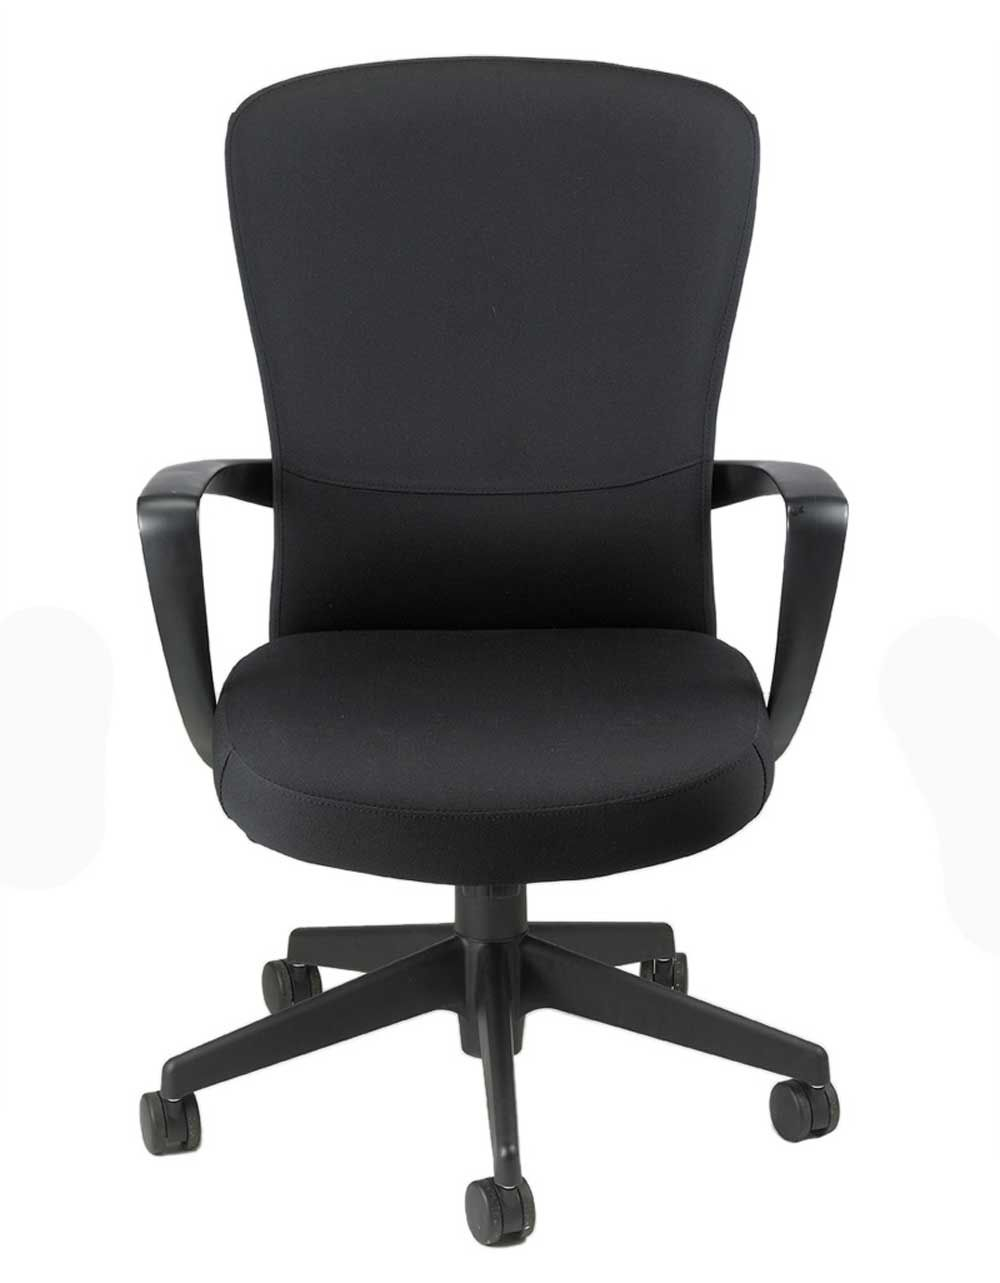 55 Cloth Office Chairs Home Office Furniture Ideas Check More